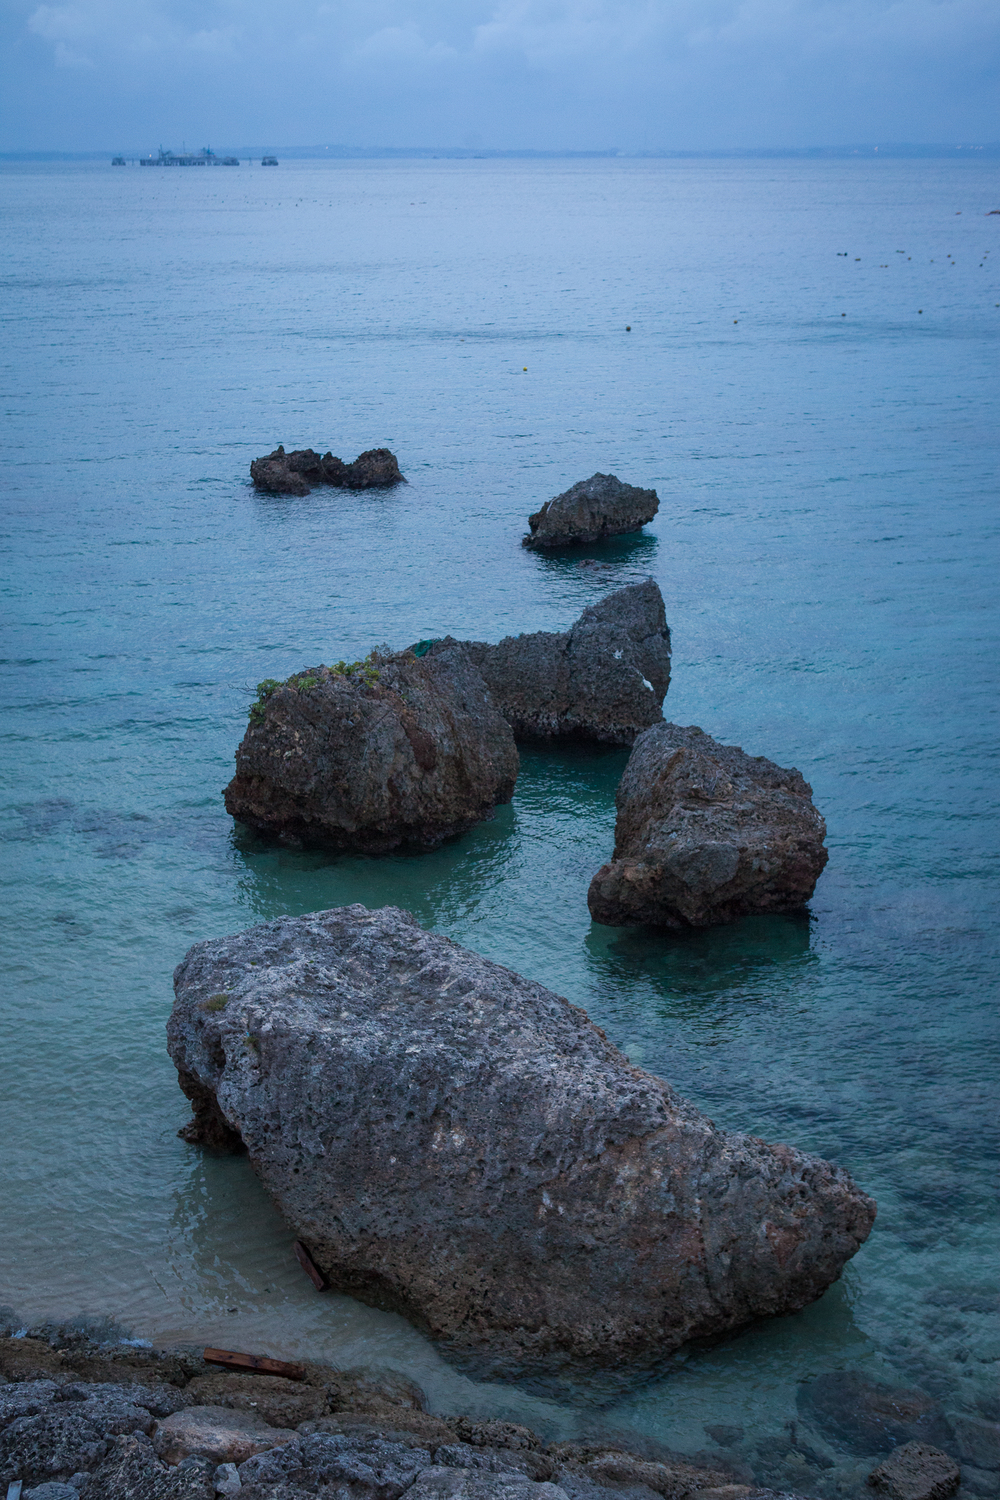 Rocks off of Ikei Island, Okinawa, Japan.